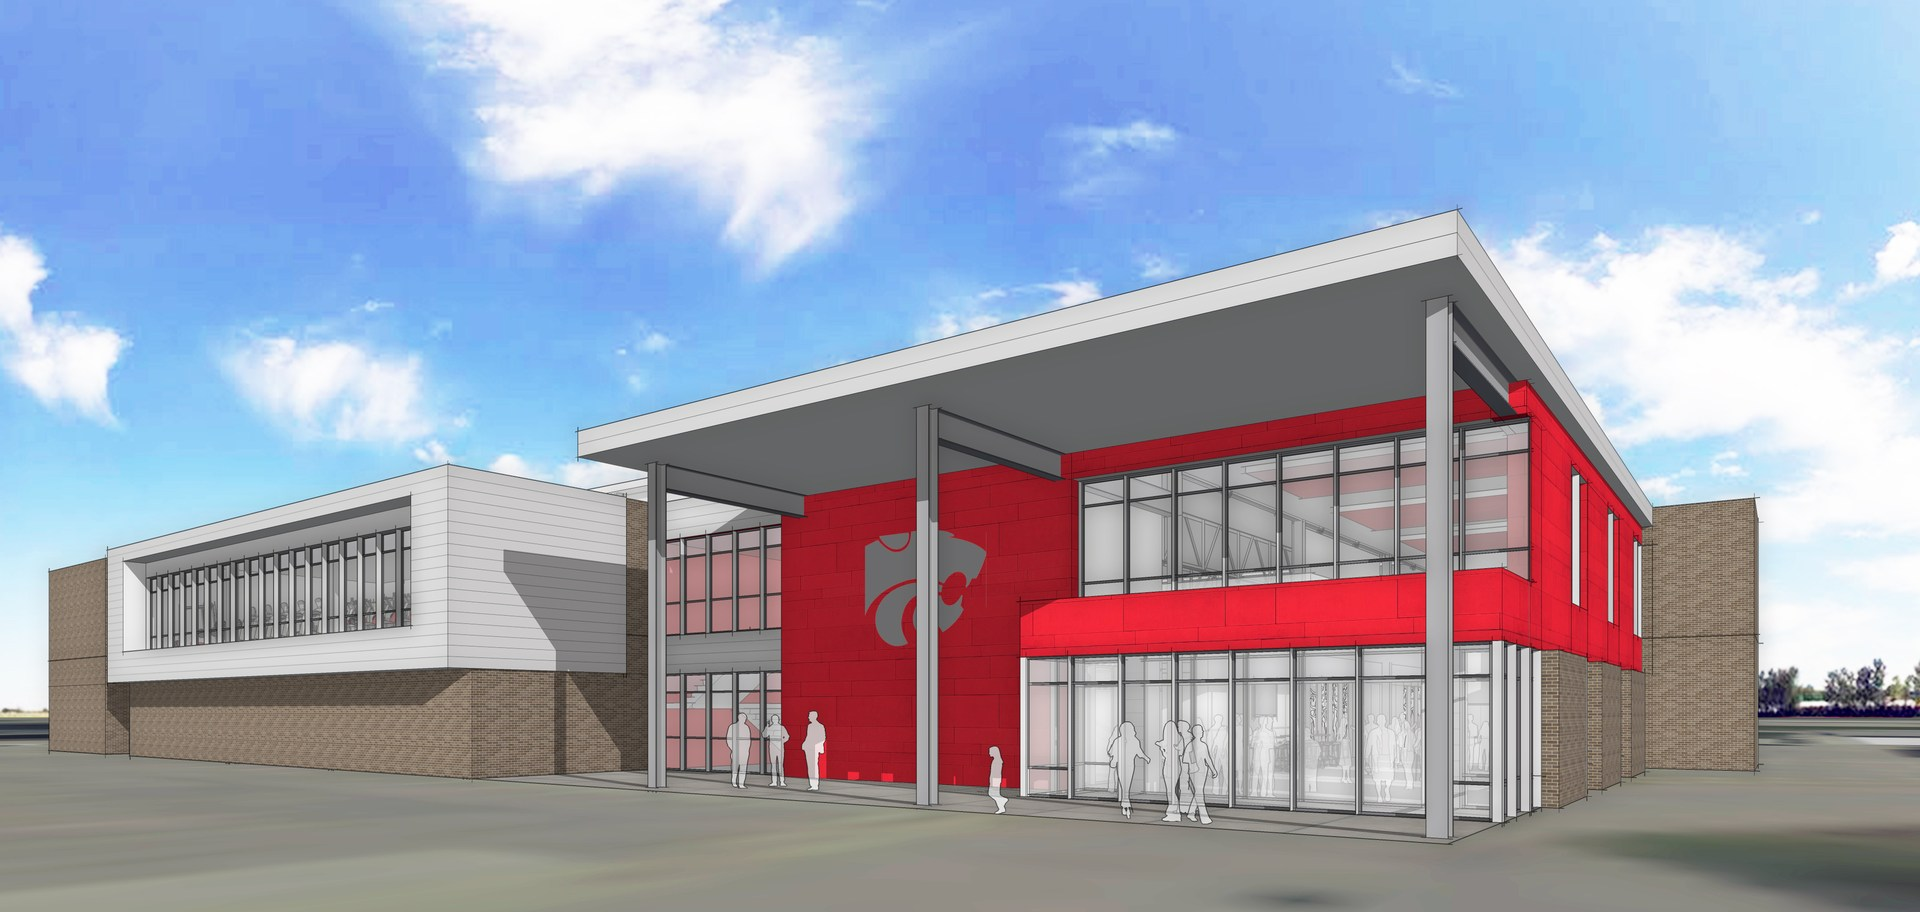 Rendering of Front Entrance of New Indoor Activities Center